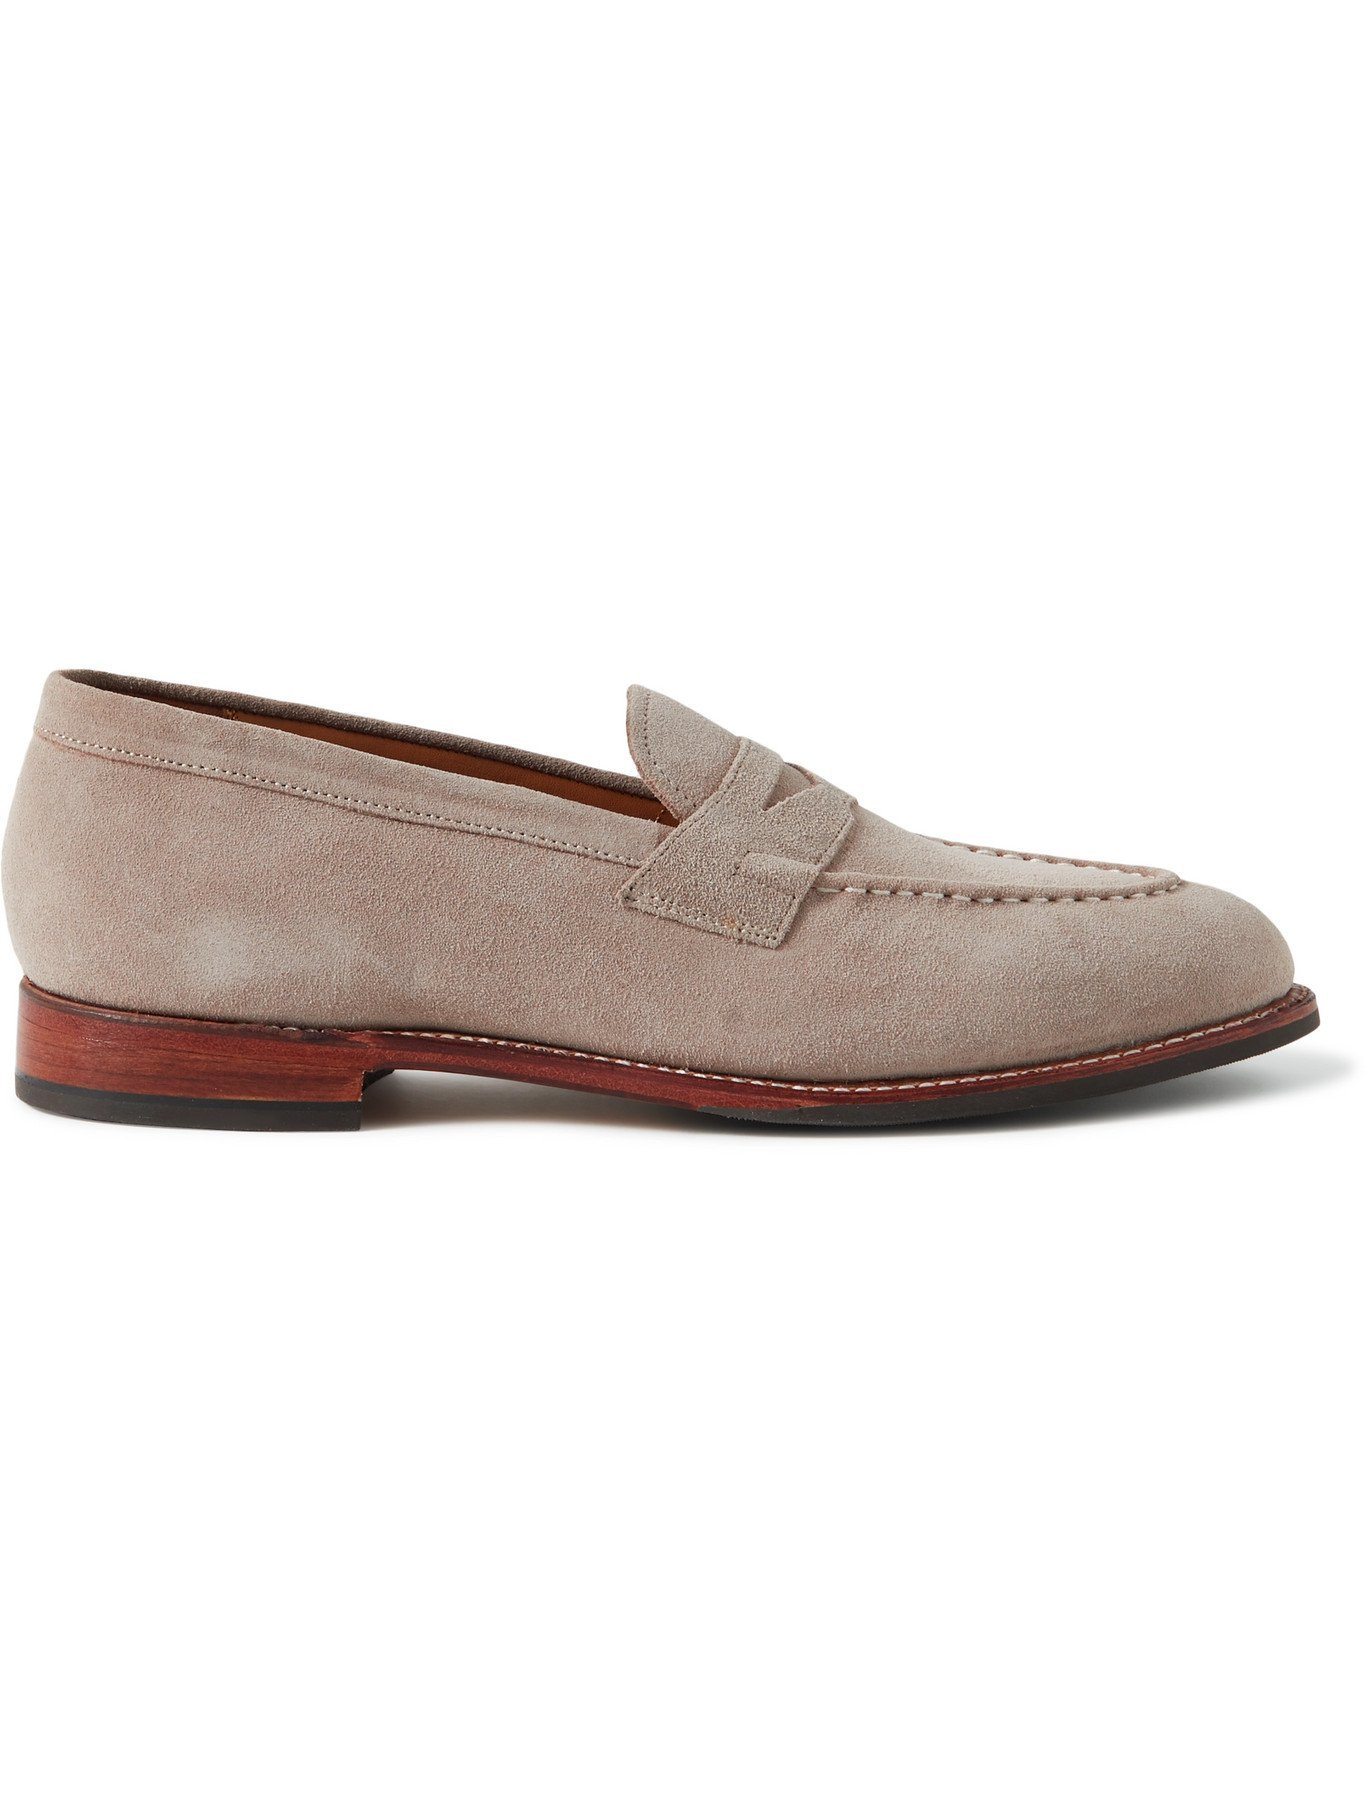 Photo: GRENSON - Lloyd Suede Penny Loafers - Brown